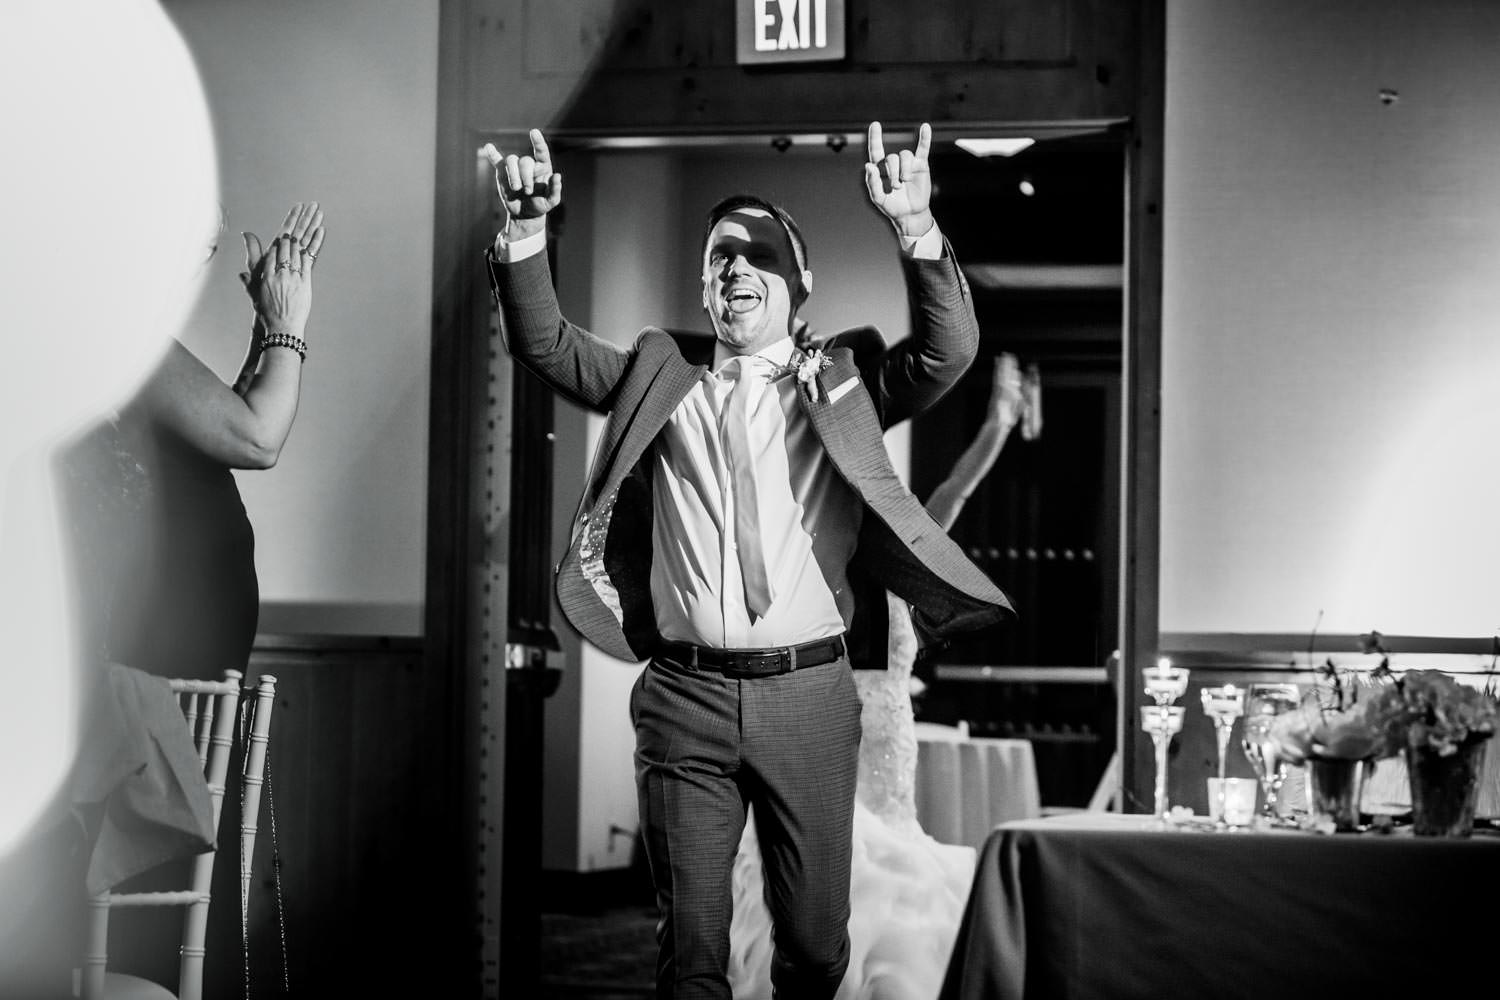 Groom enters ballroom at Stowe Mountain Lodge for wedding introductions with devil horn hand gesture towards the photographer